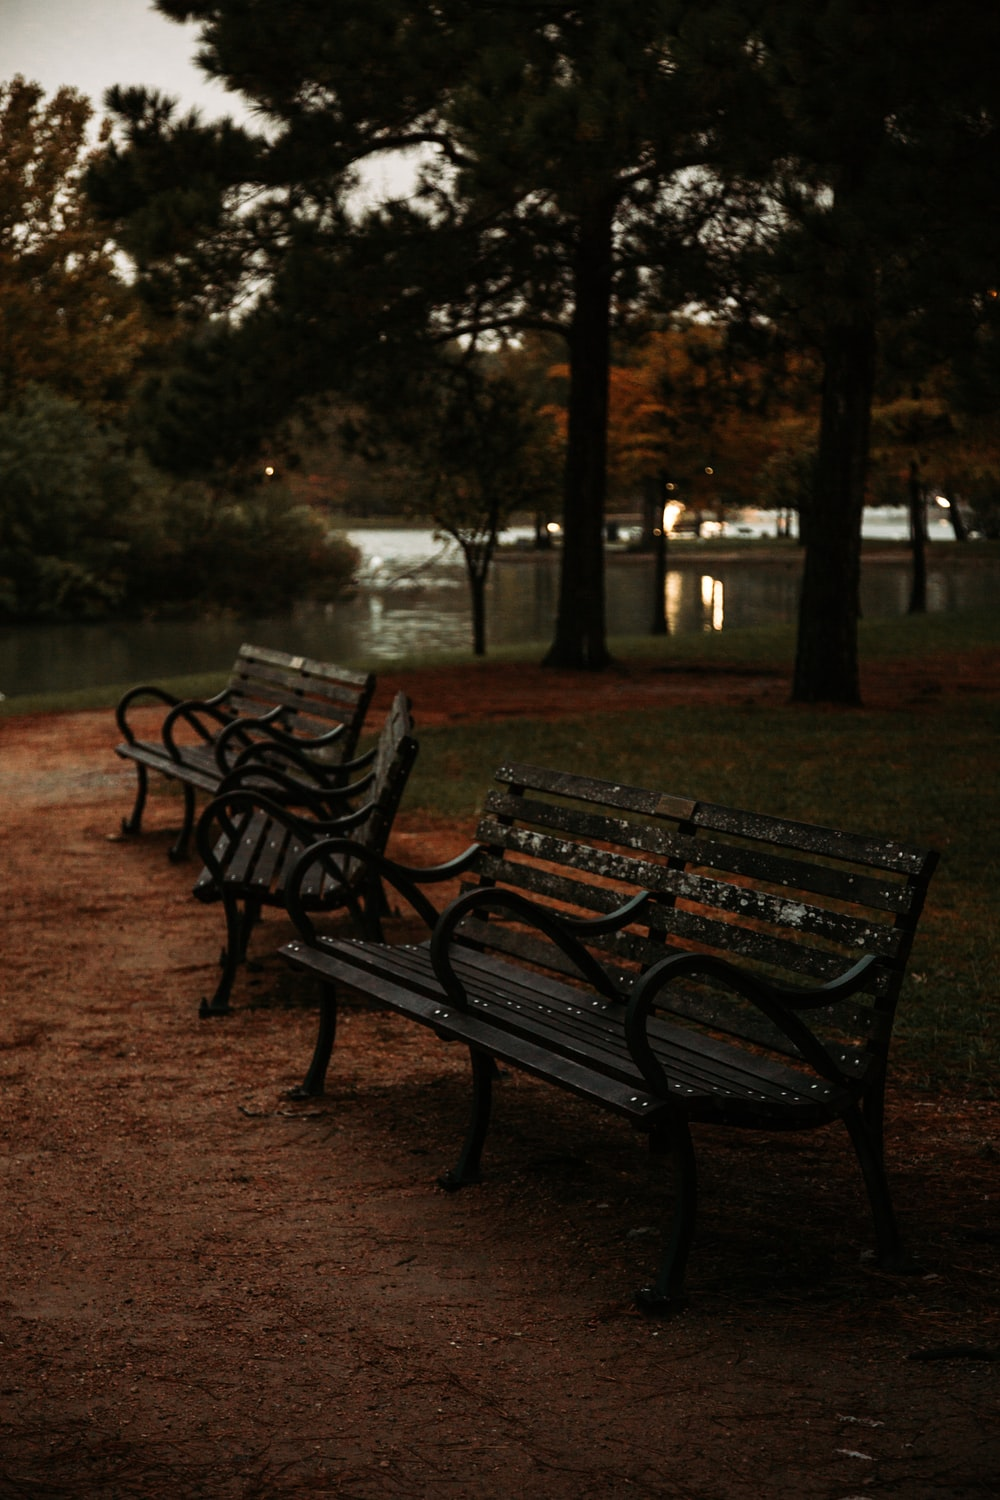 three brown metal benches near trees